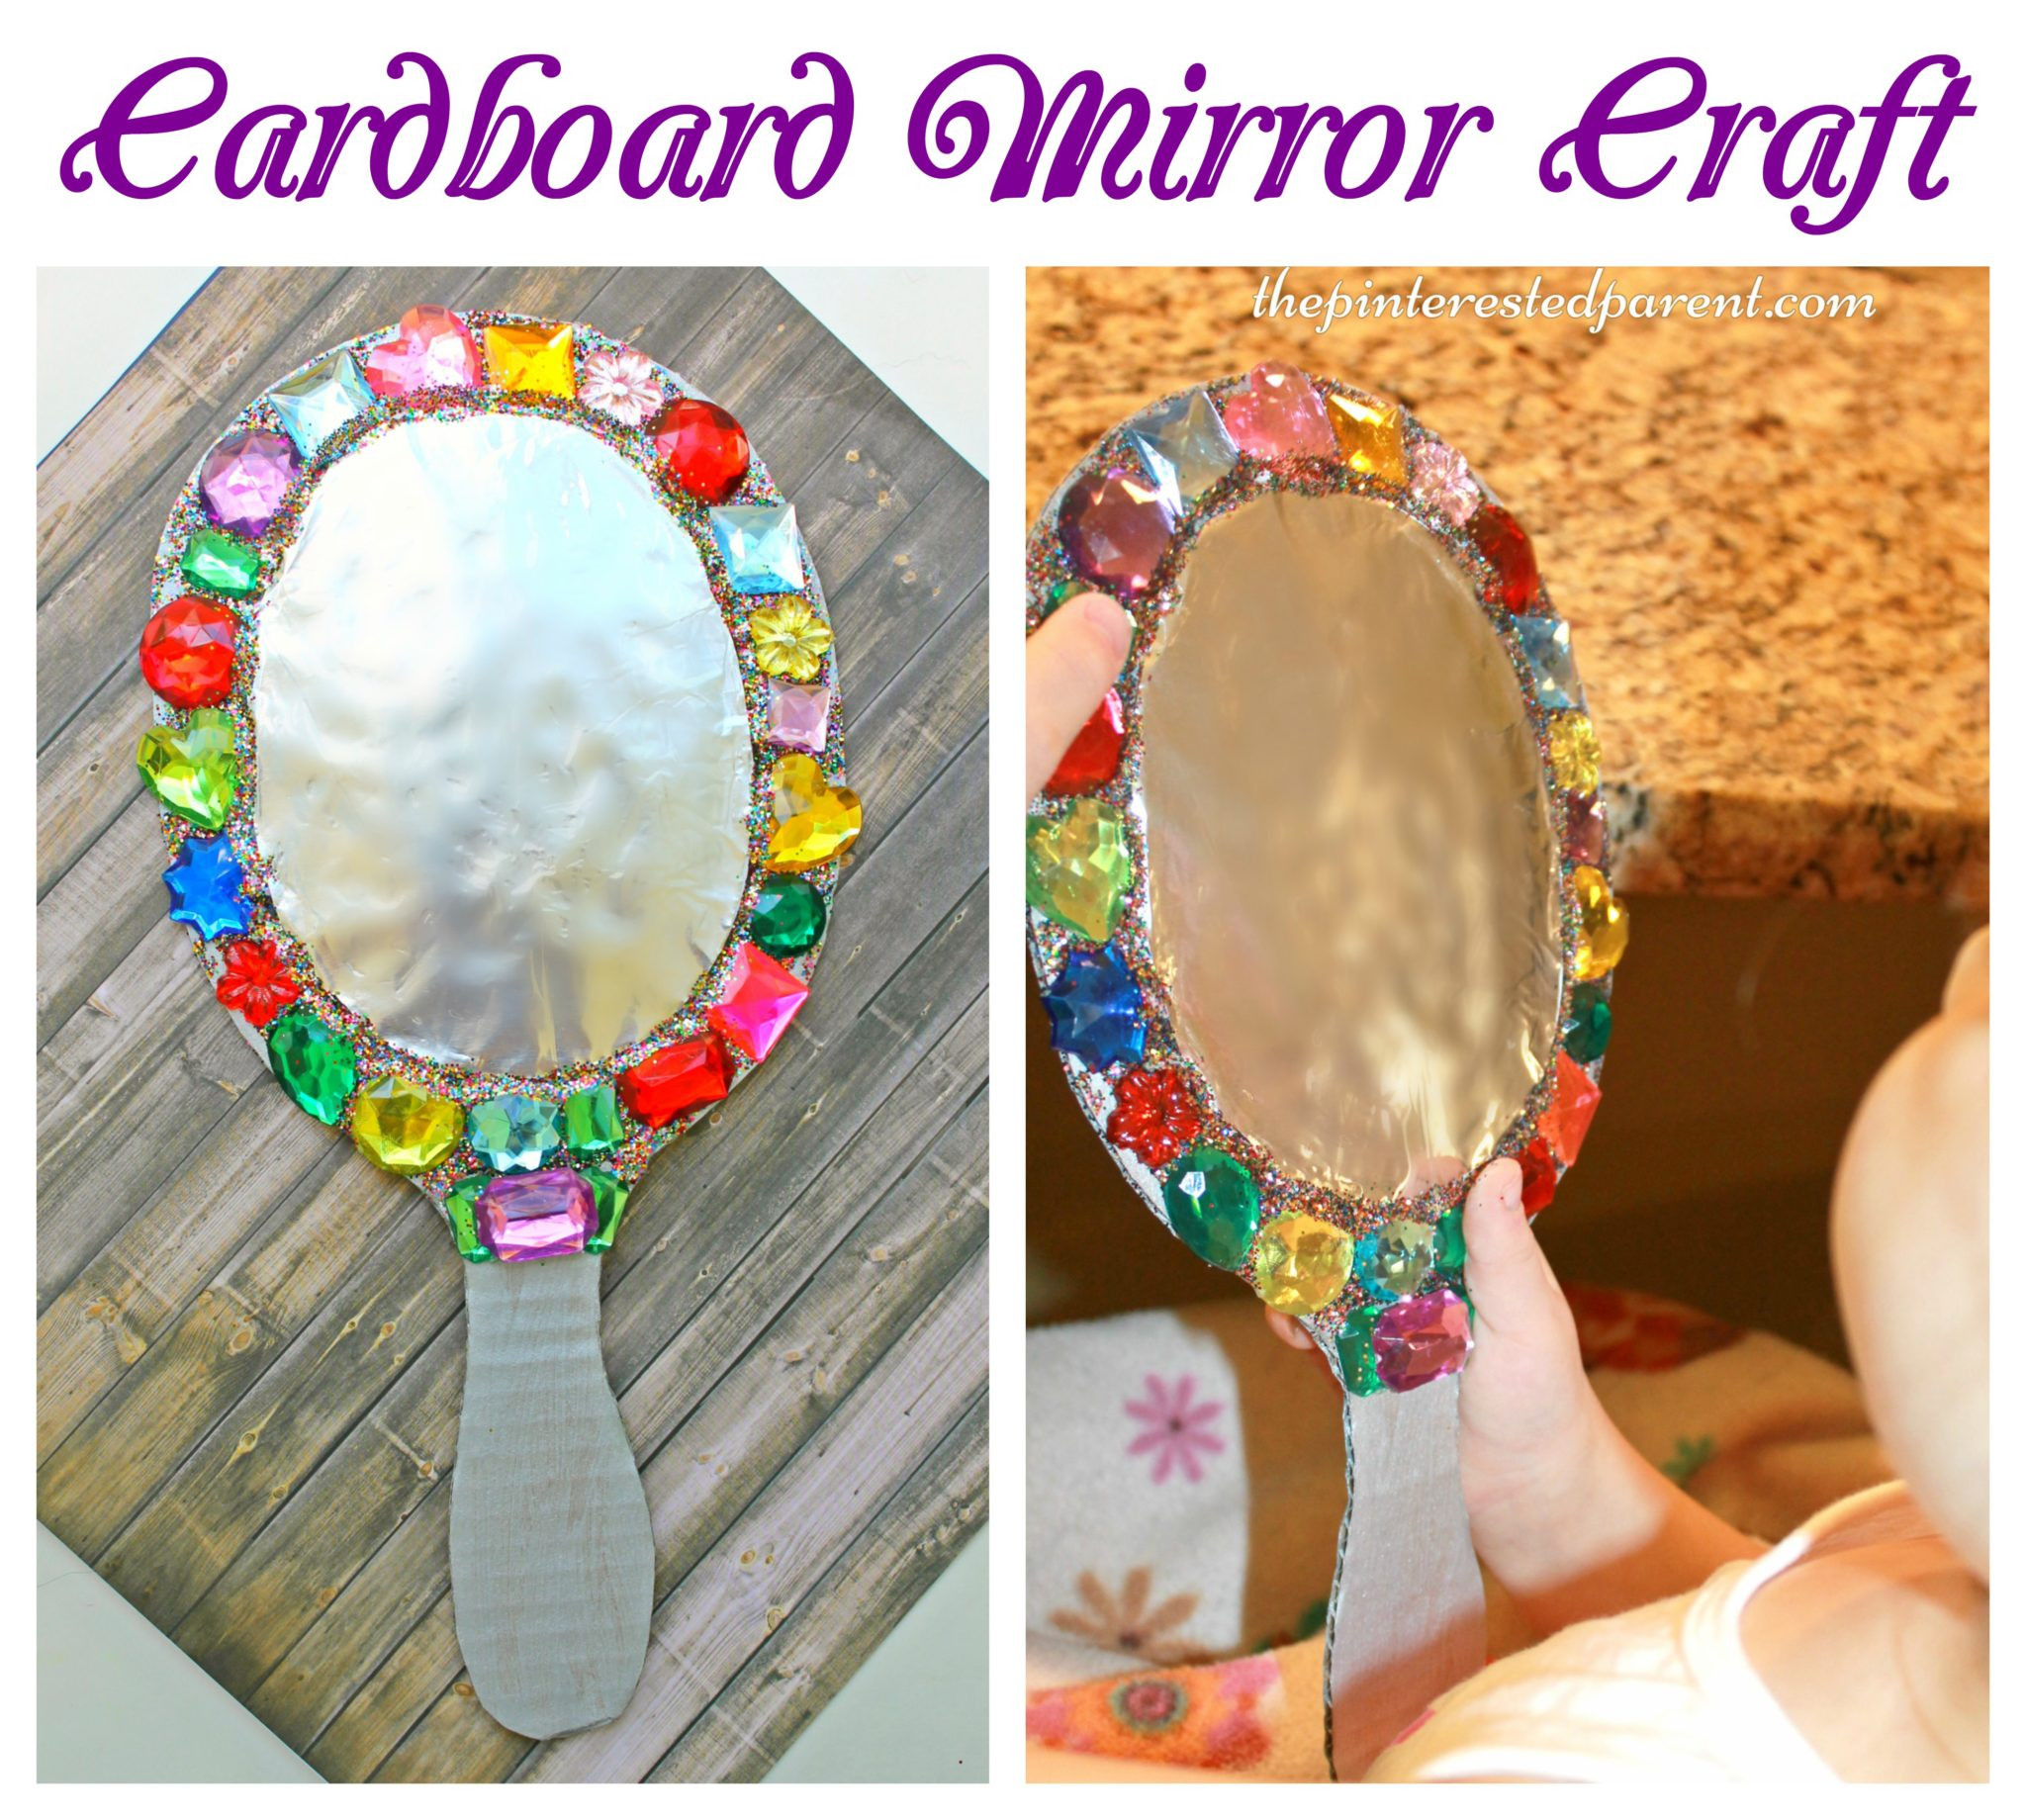 Best ideas about Arts & Crafts For Kids . Save or Pin Jeweled Cardboard Mirror Craft – The Pinterested Parent Now.